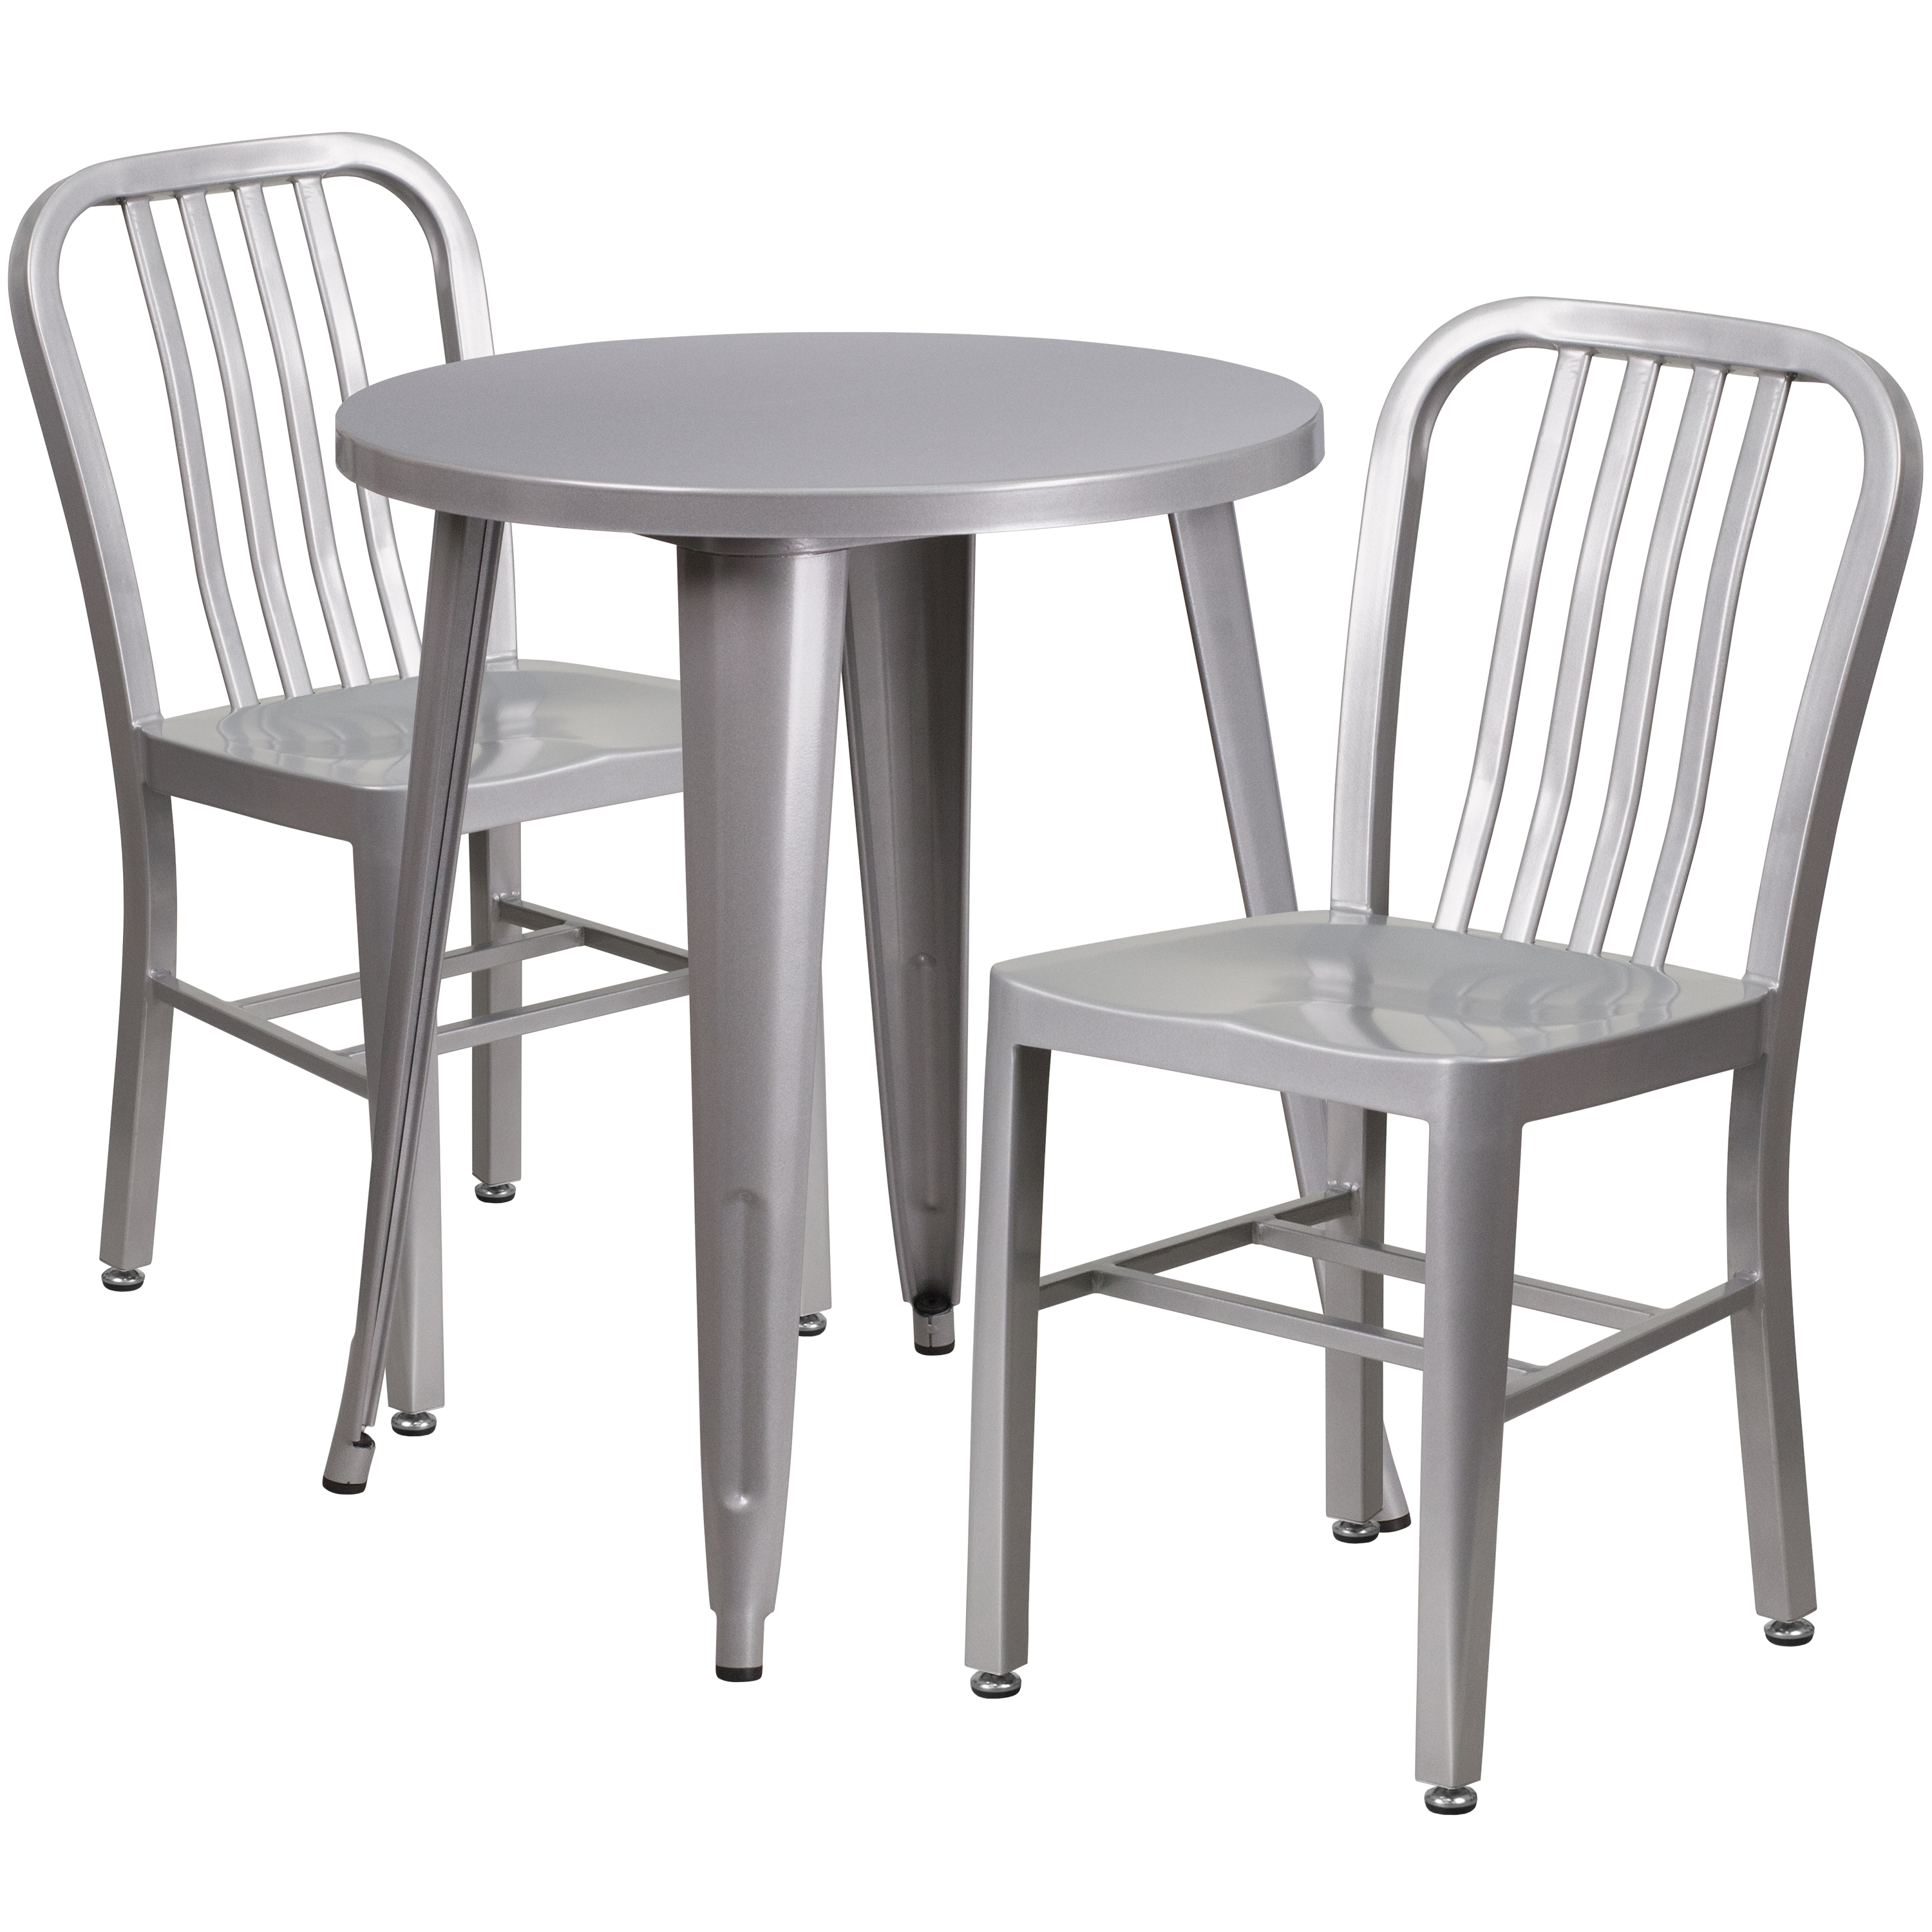 Flash Furniture 24'' Round Metal Indoor-Outdoor Table Set with 2 Vertical Slat Back Chairs, Multiple Colors